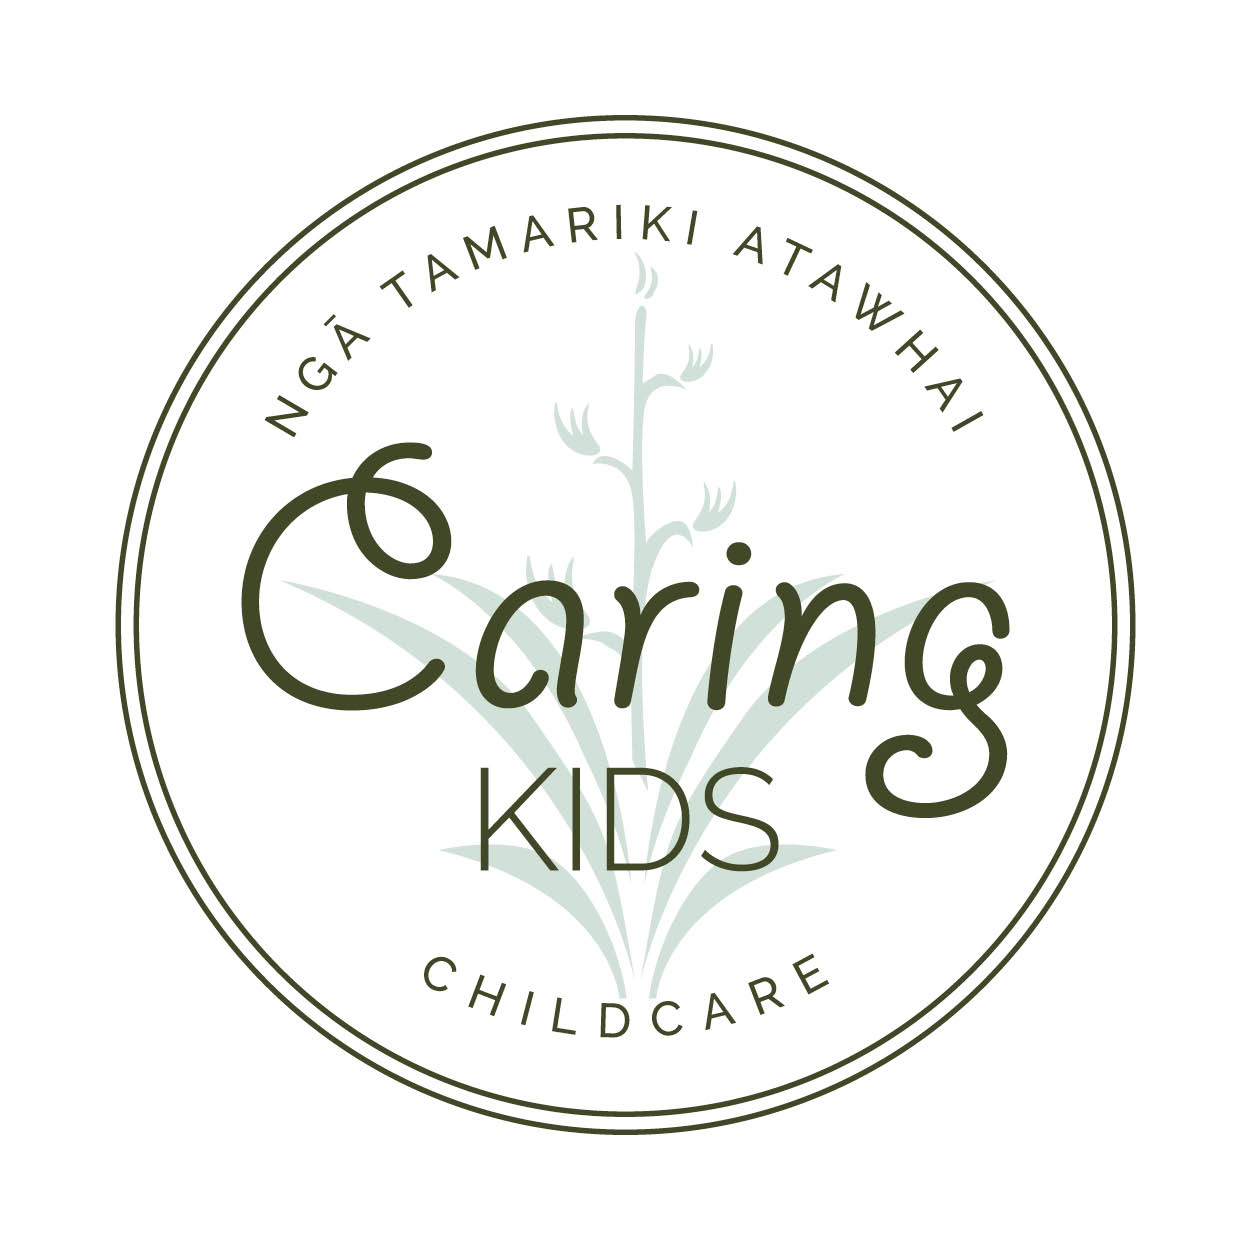 Caring Kids Childcare